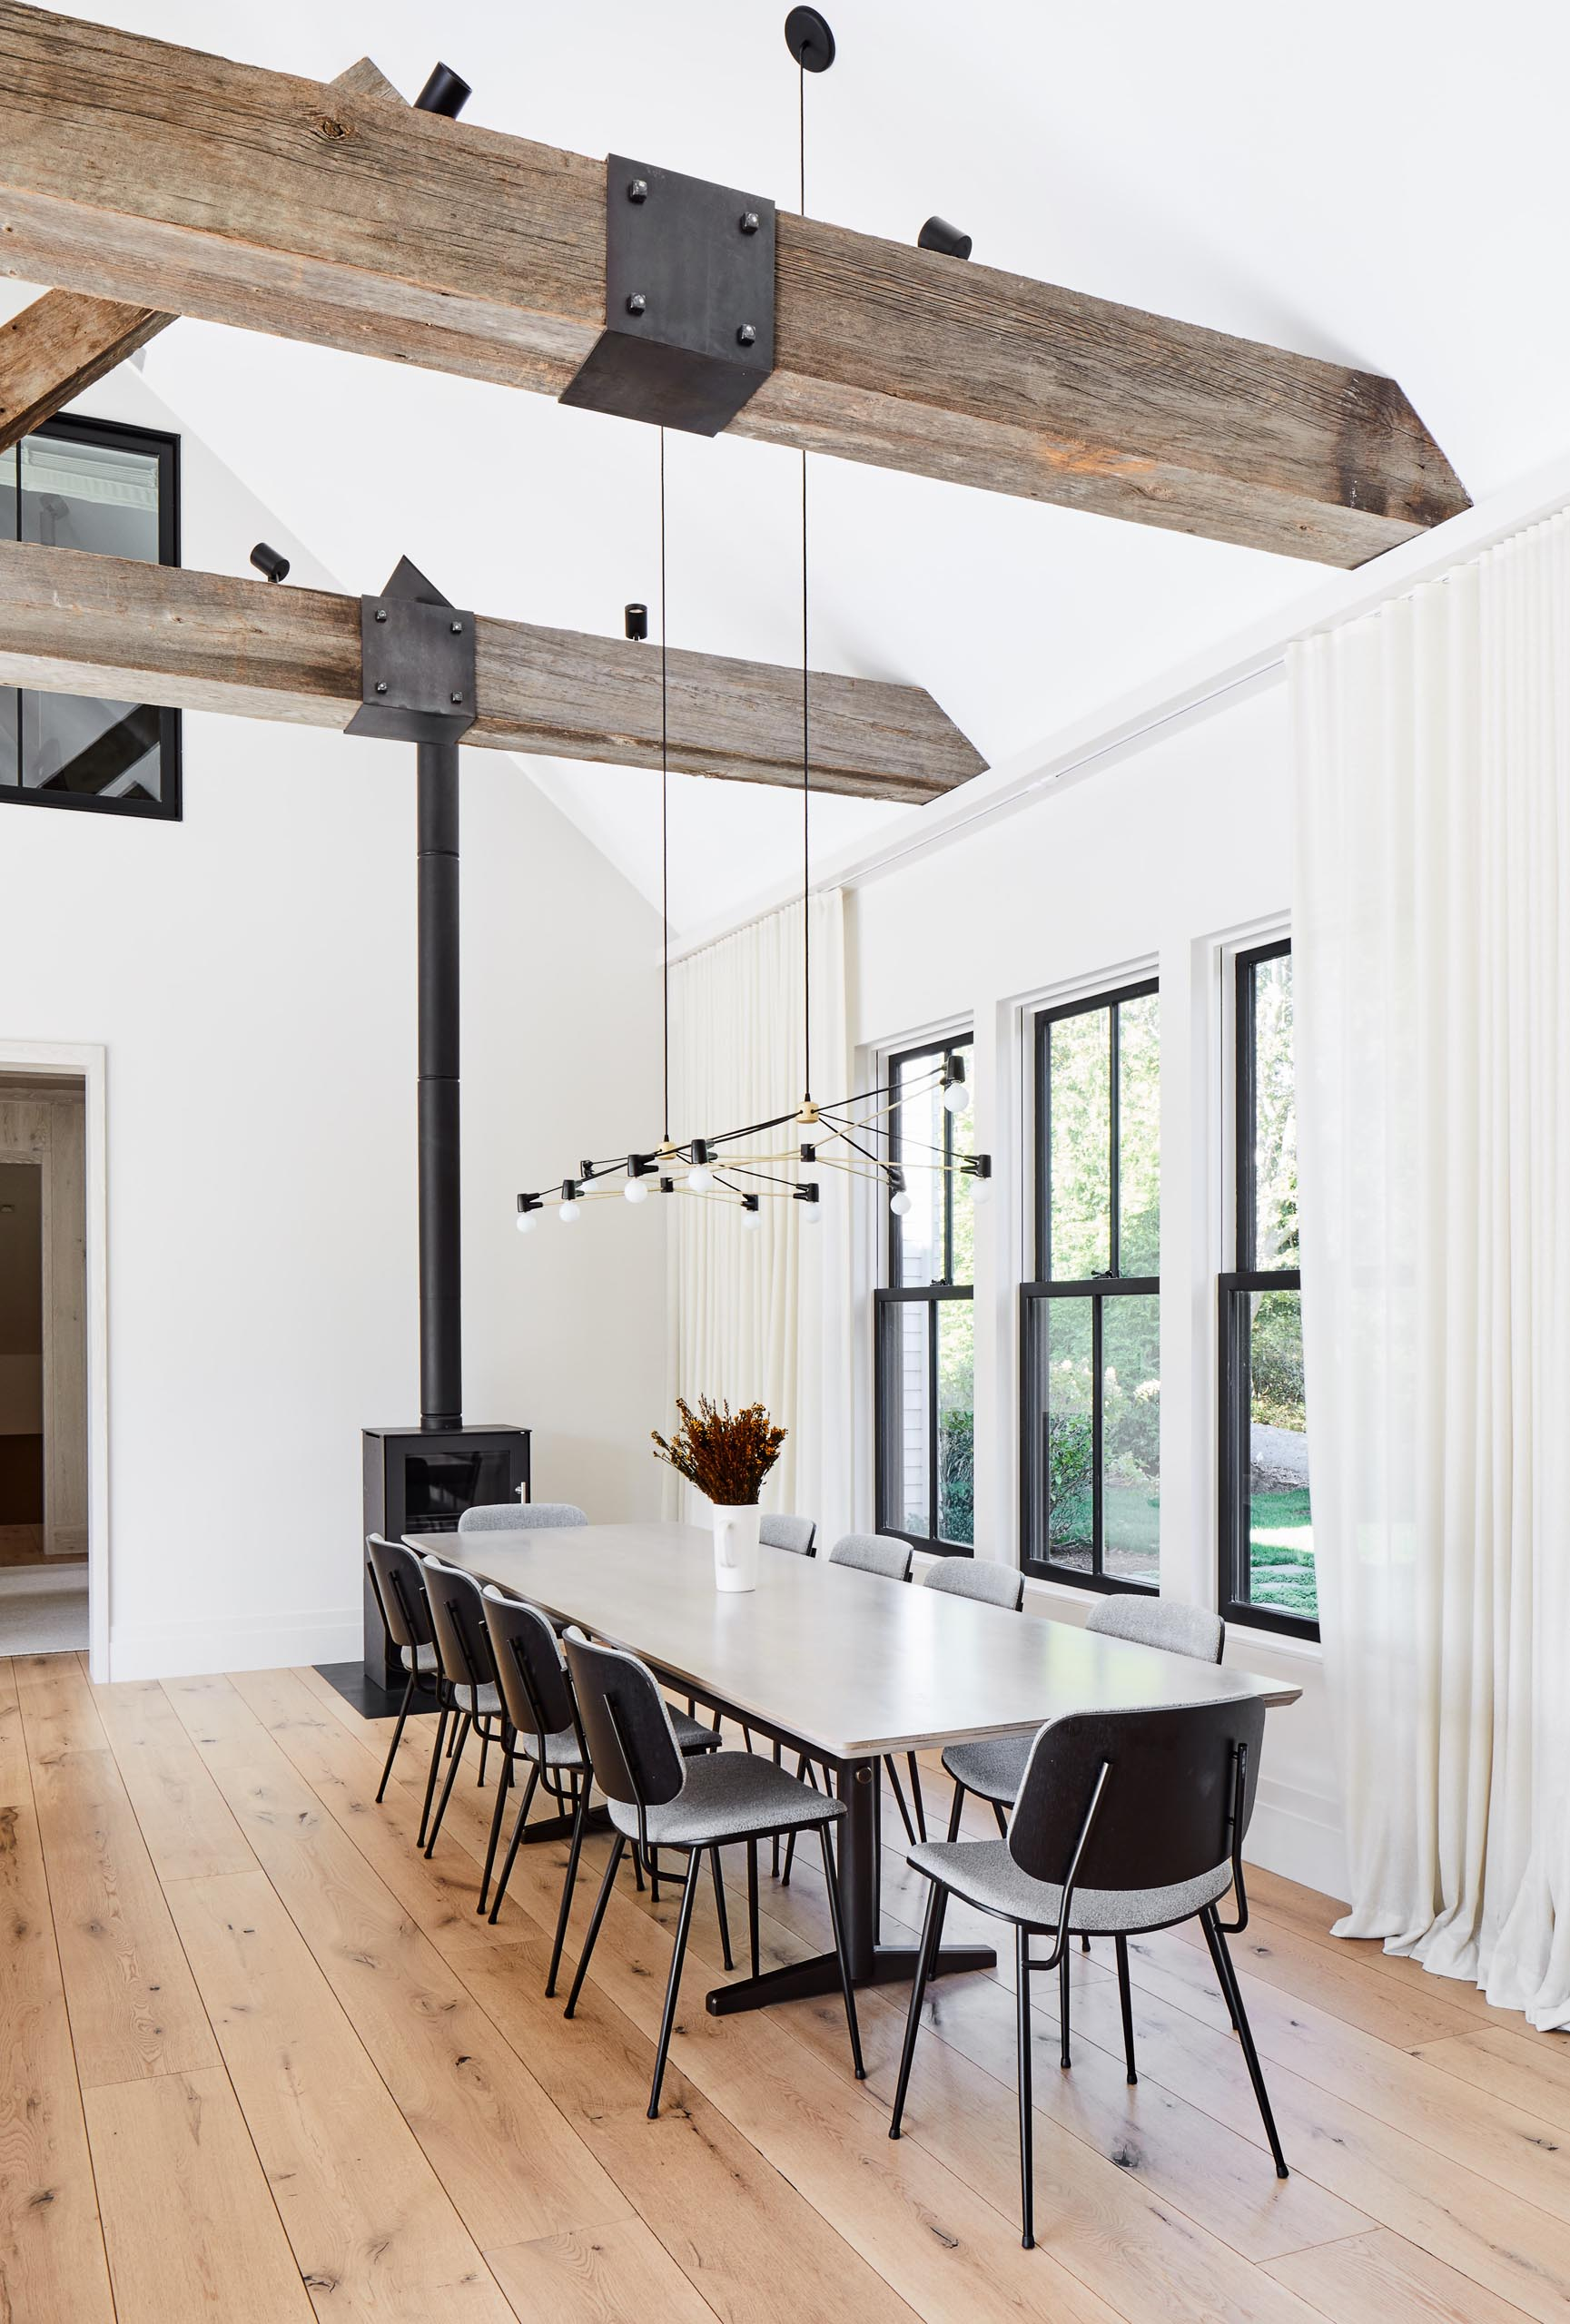 This modern farmhouse dining room features the Double Cord Chandelier from Brendan Ravenhill Studio, which extends over the large dining table. Throughout the home there's solid wide plank white oak from The Hudson Company with a clear Bona Traffic finish.